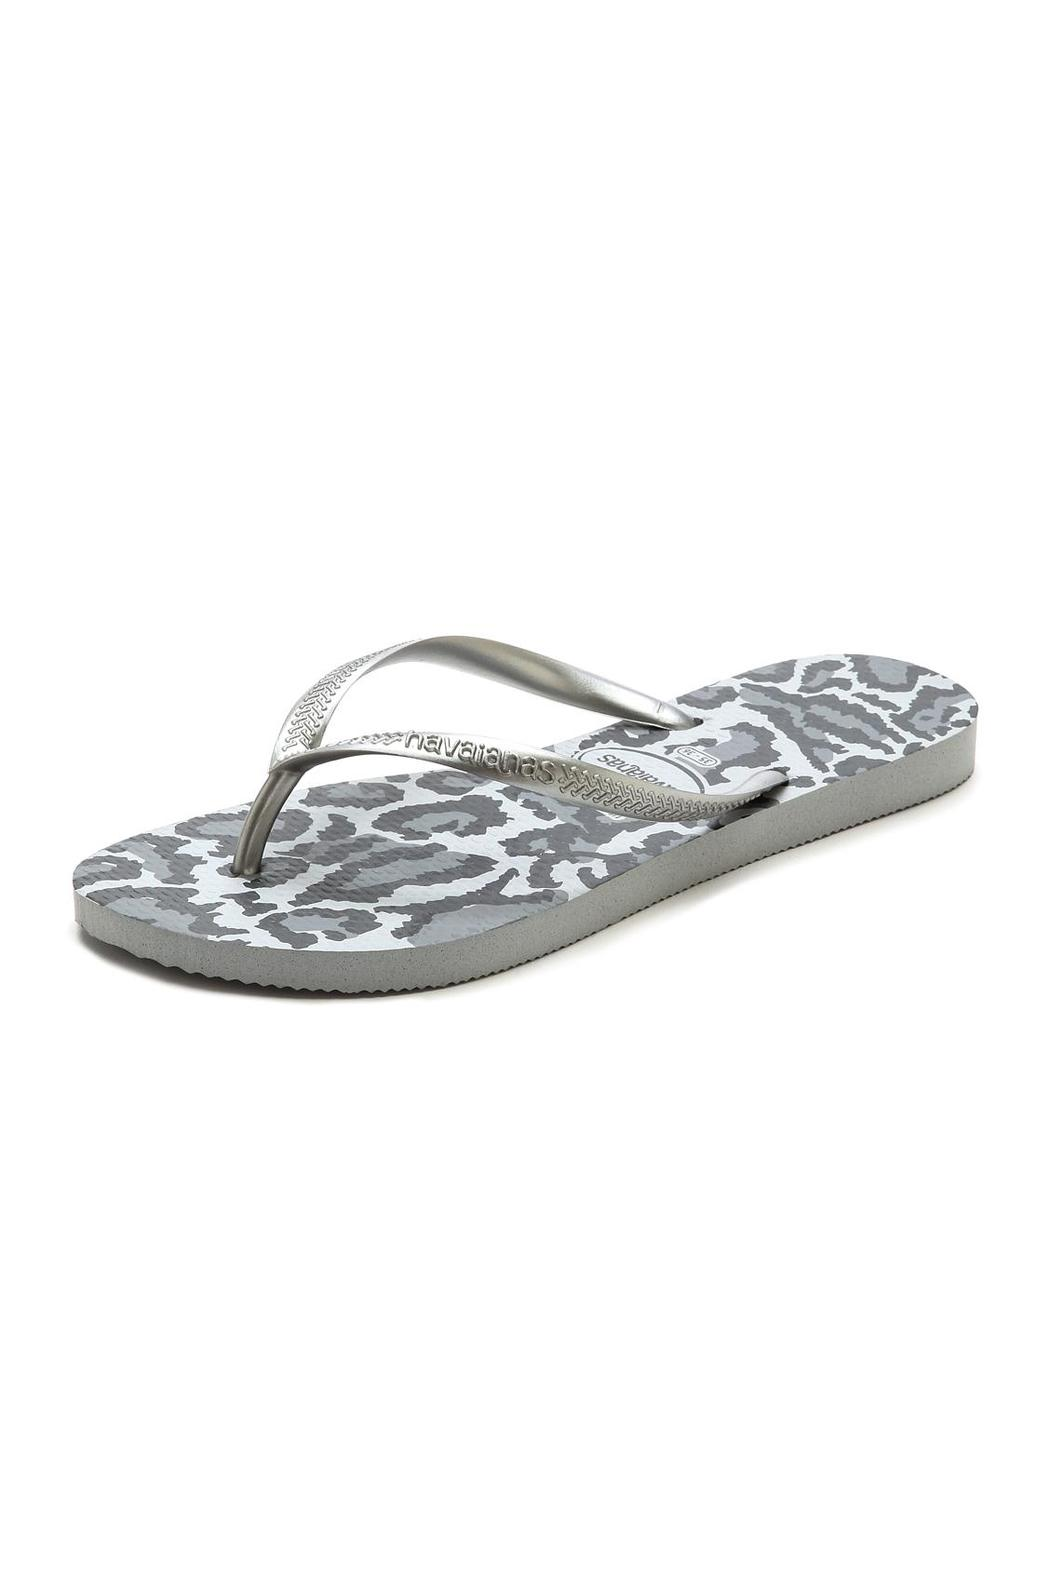 6747243e80c4c8 Havaianas Animal- Silver from New York by Lola Saratoga — Shoptiques